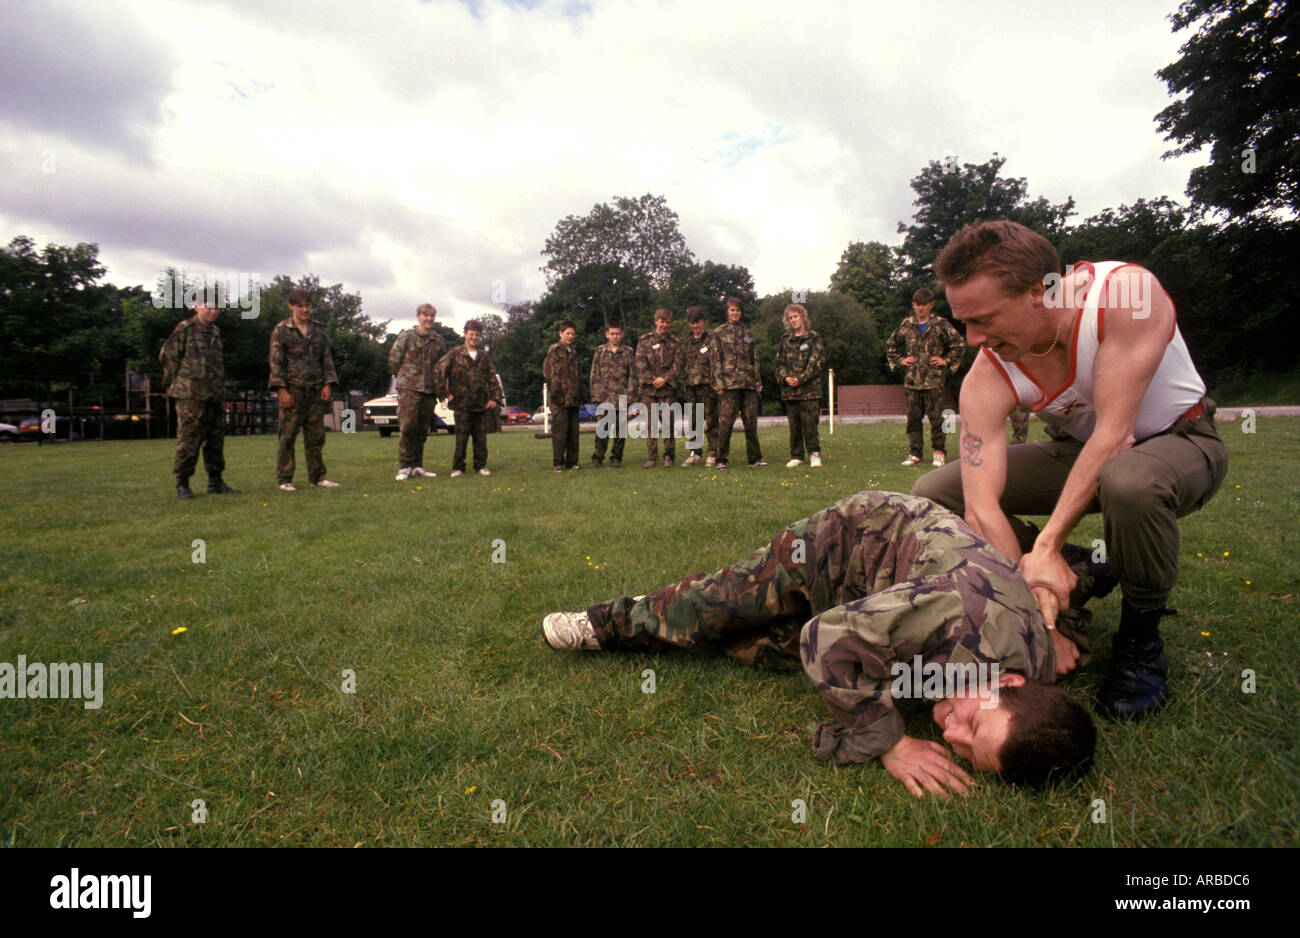 a soldier of the Royal Welsh Fusiliers demonstrates self defense to cadets - Stock Image